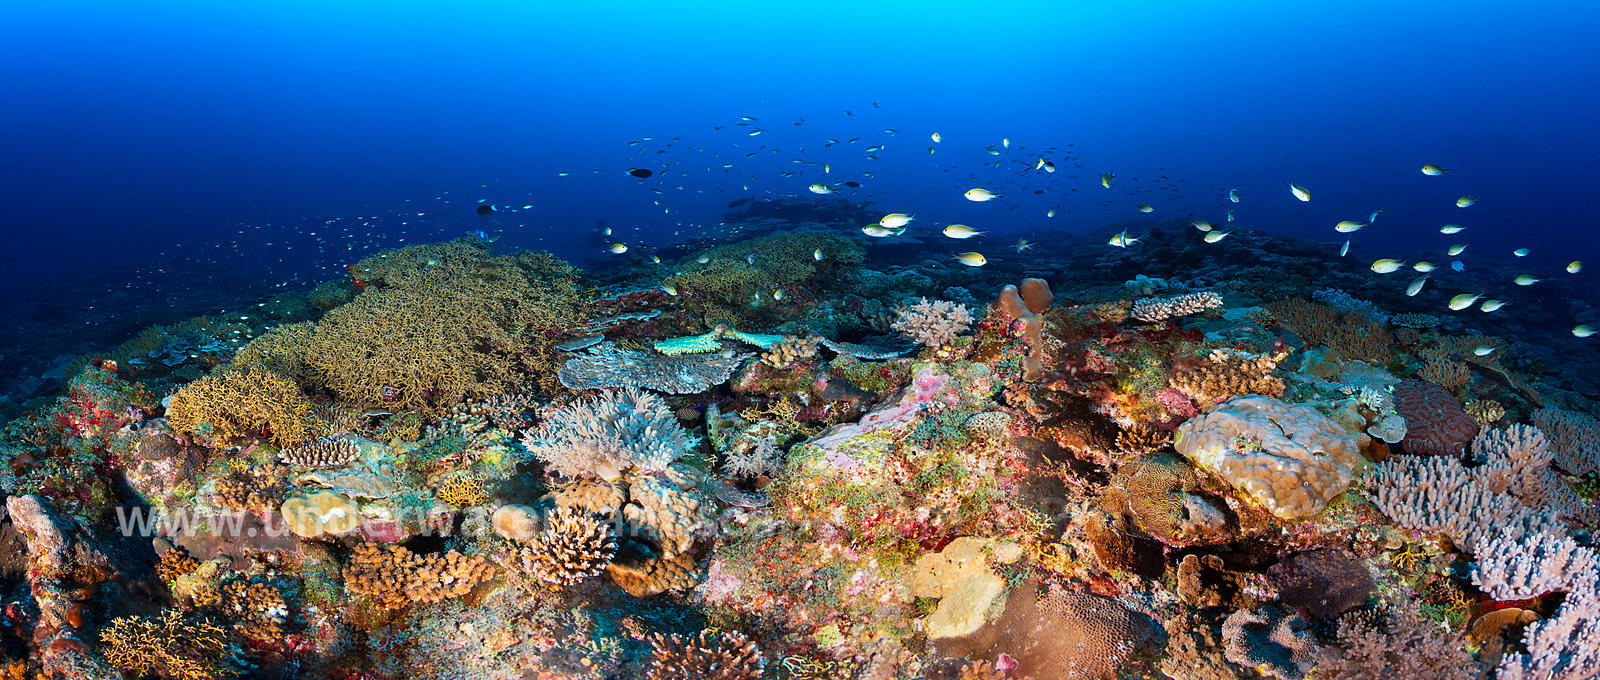 Panoramic underwater reef view